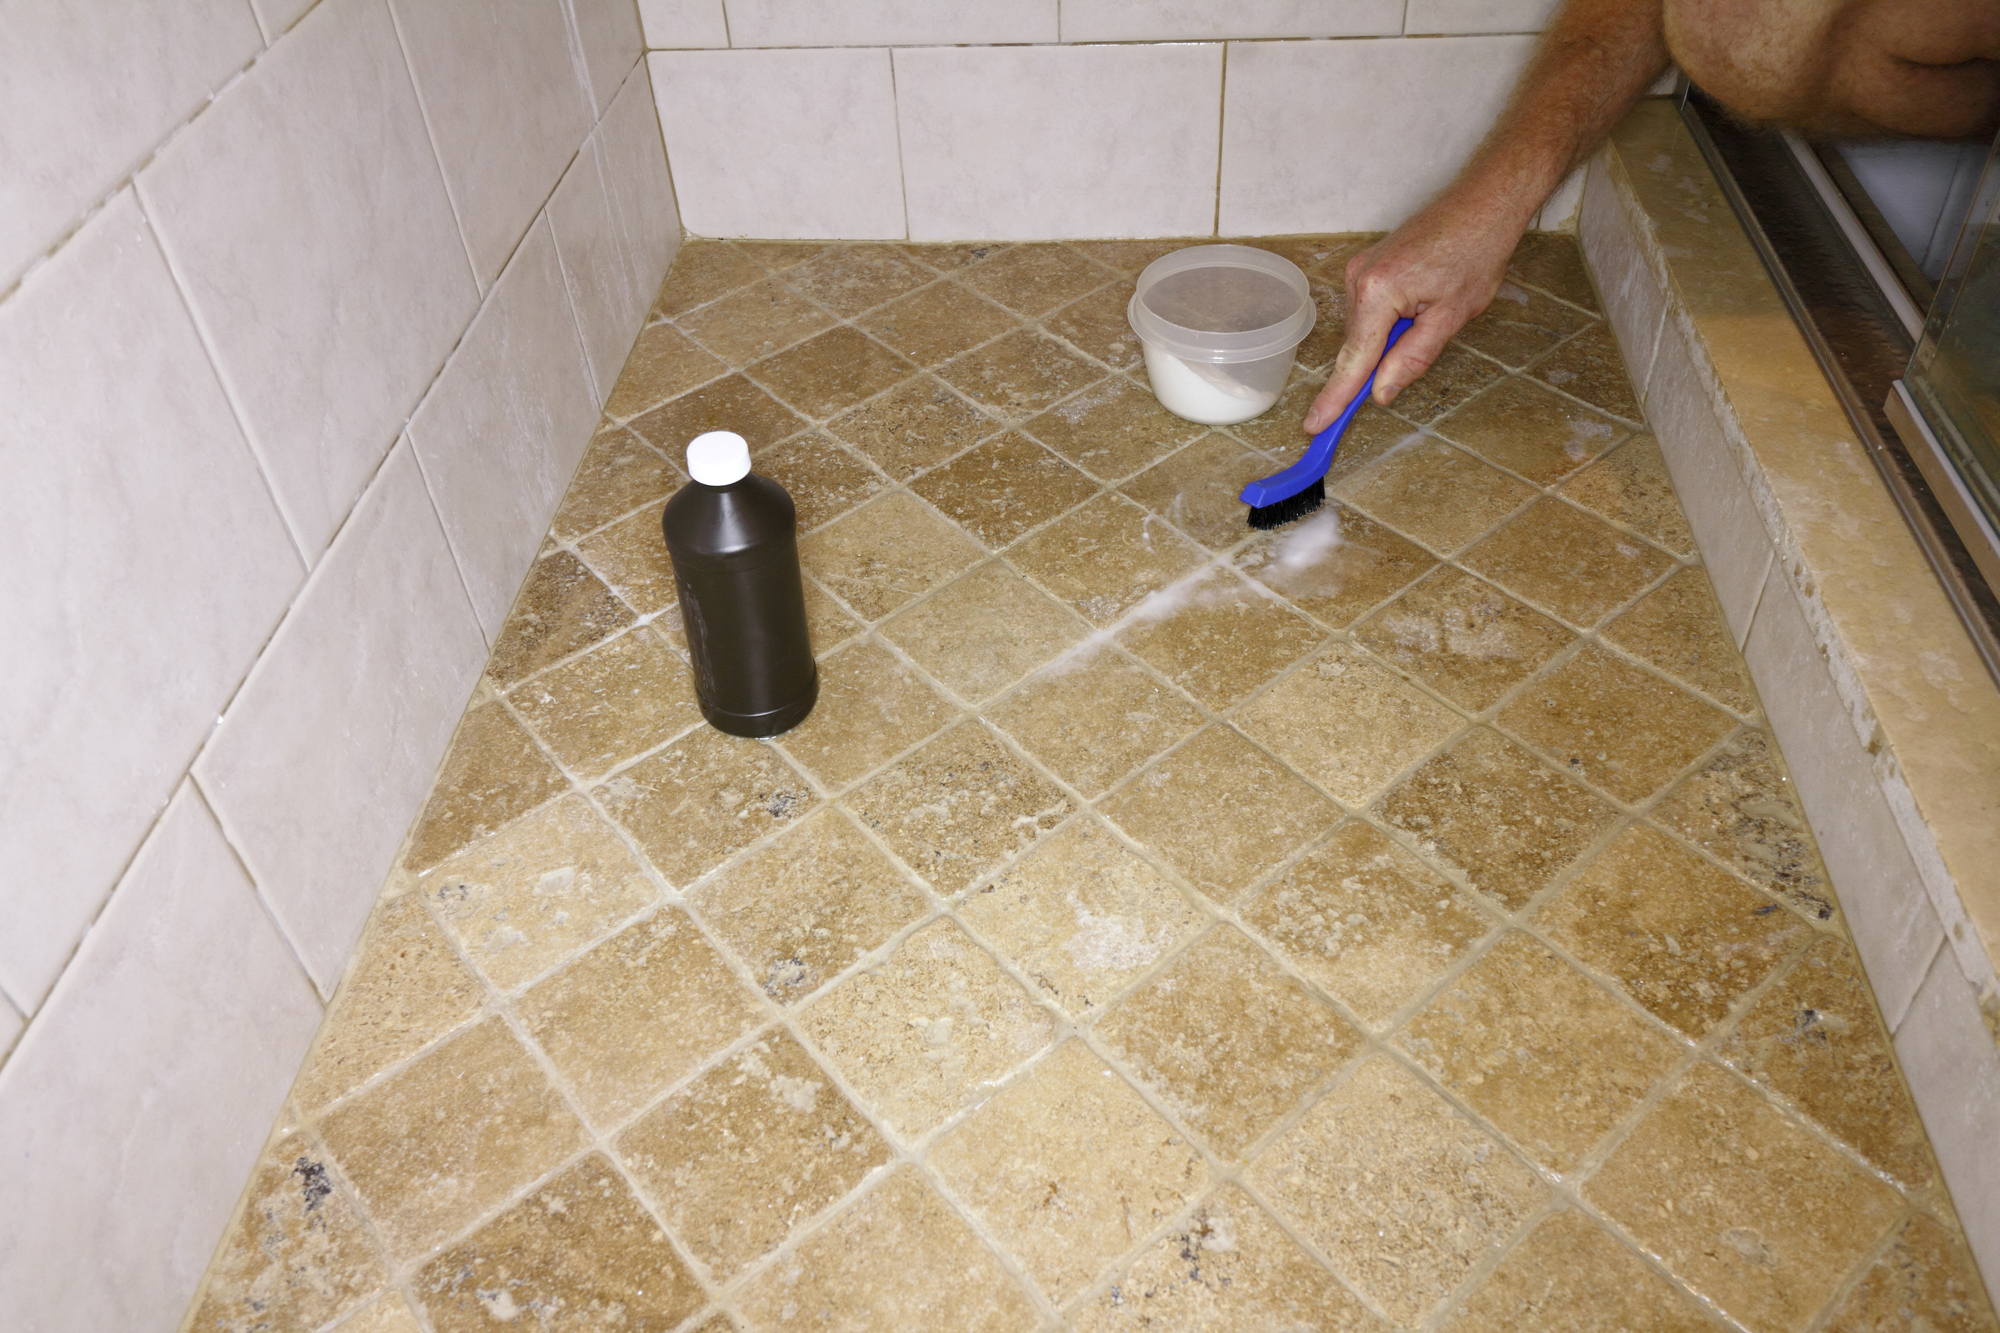 5 Ways To Prevent Toxic Mold In Tile Grout The Grout Doctor